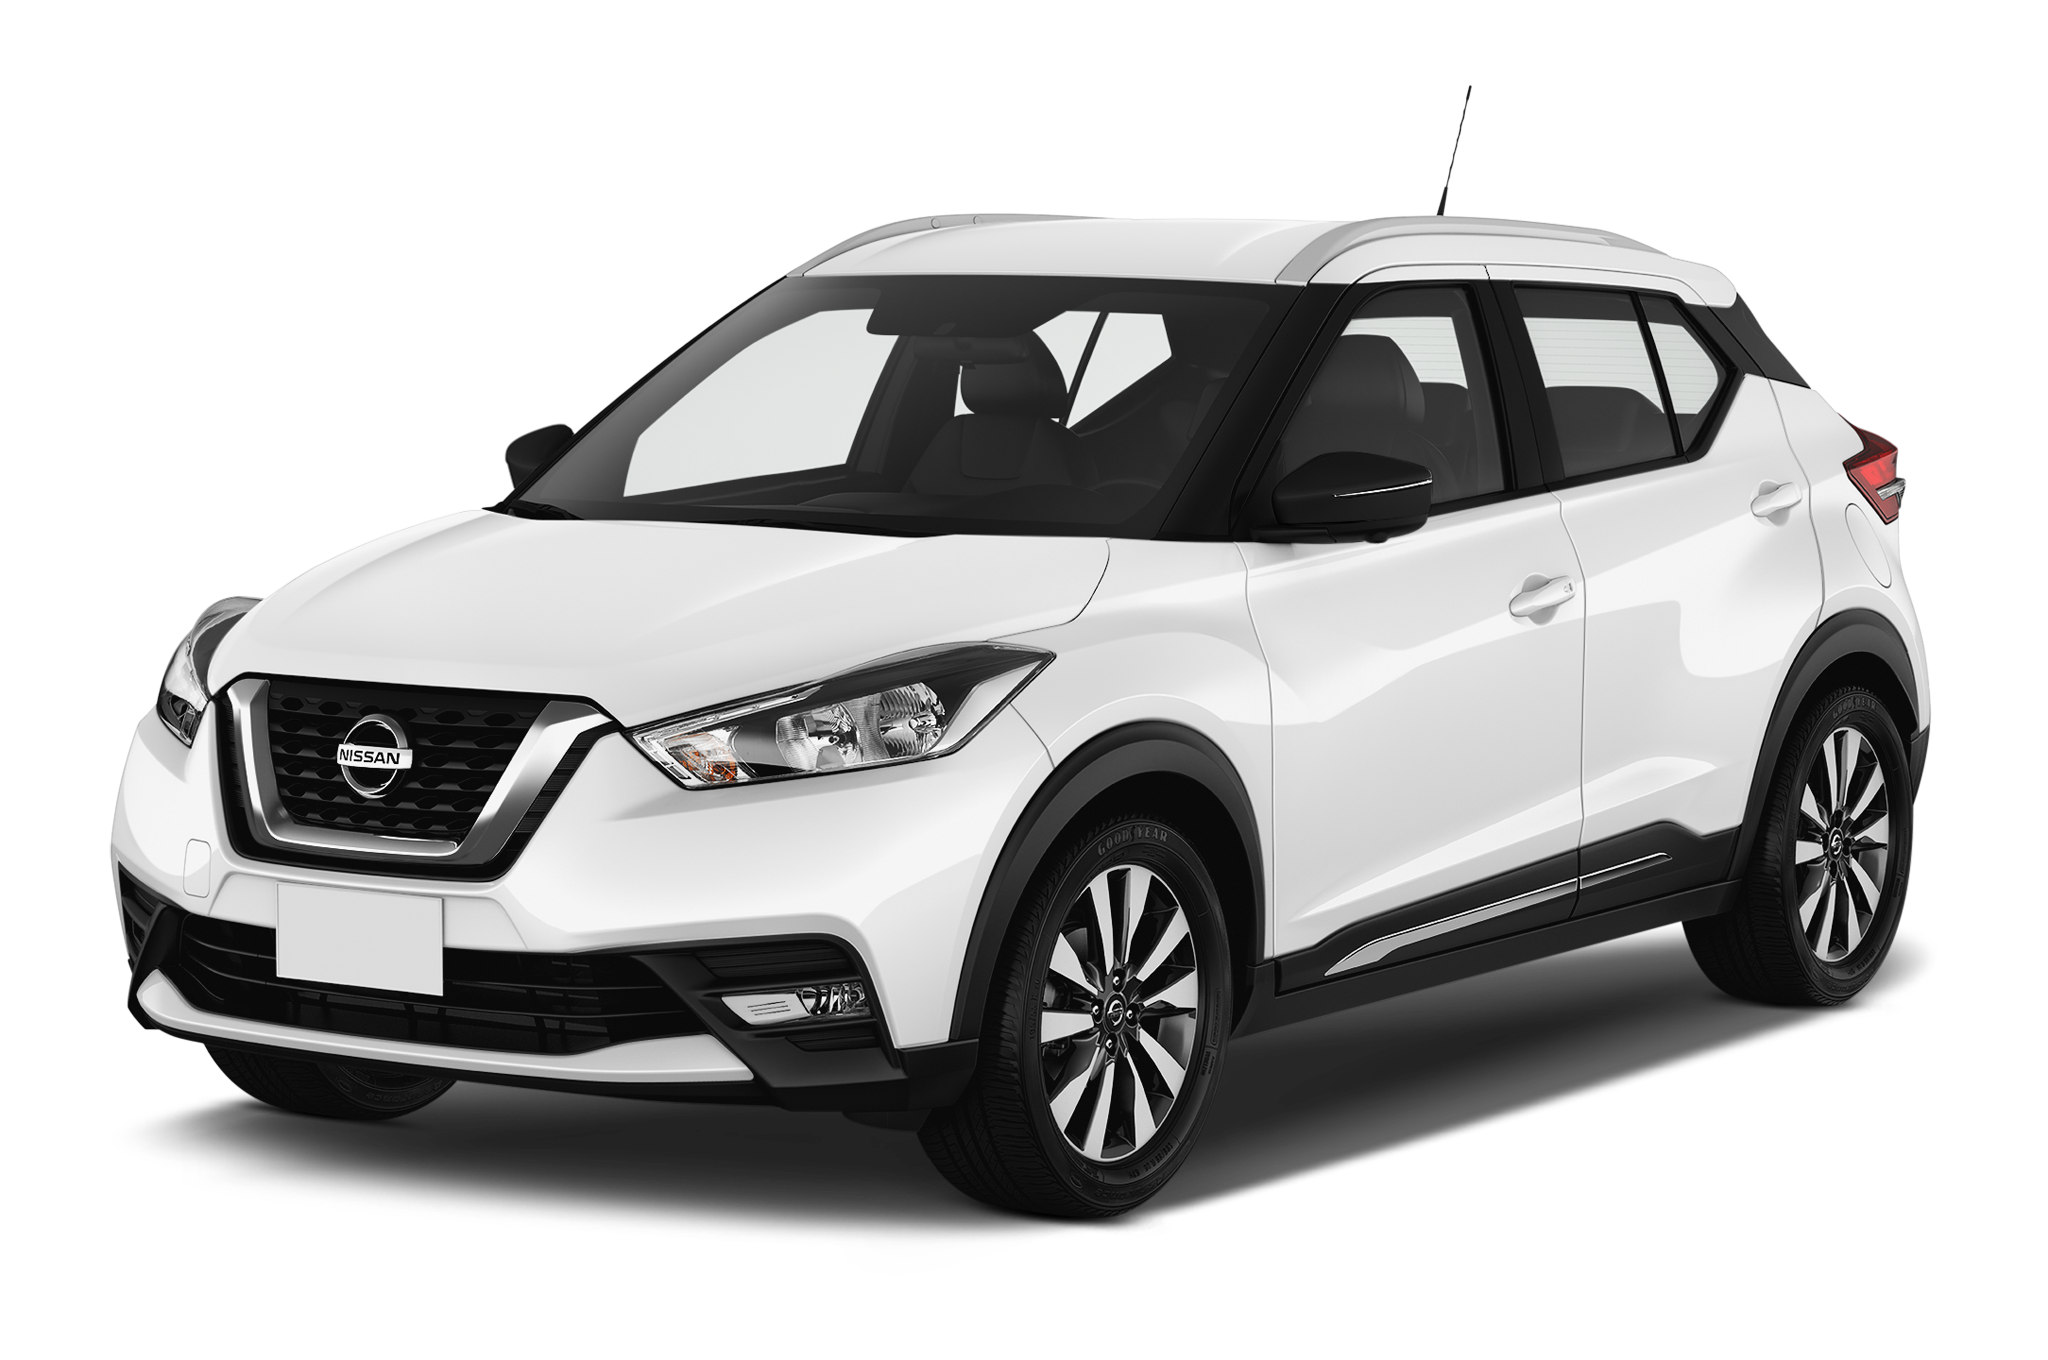 2019 nissan kicks overview msn autos. Black Bedroom Furniture Sets. Home Design Ideas